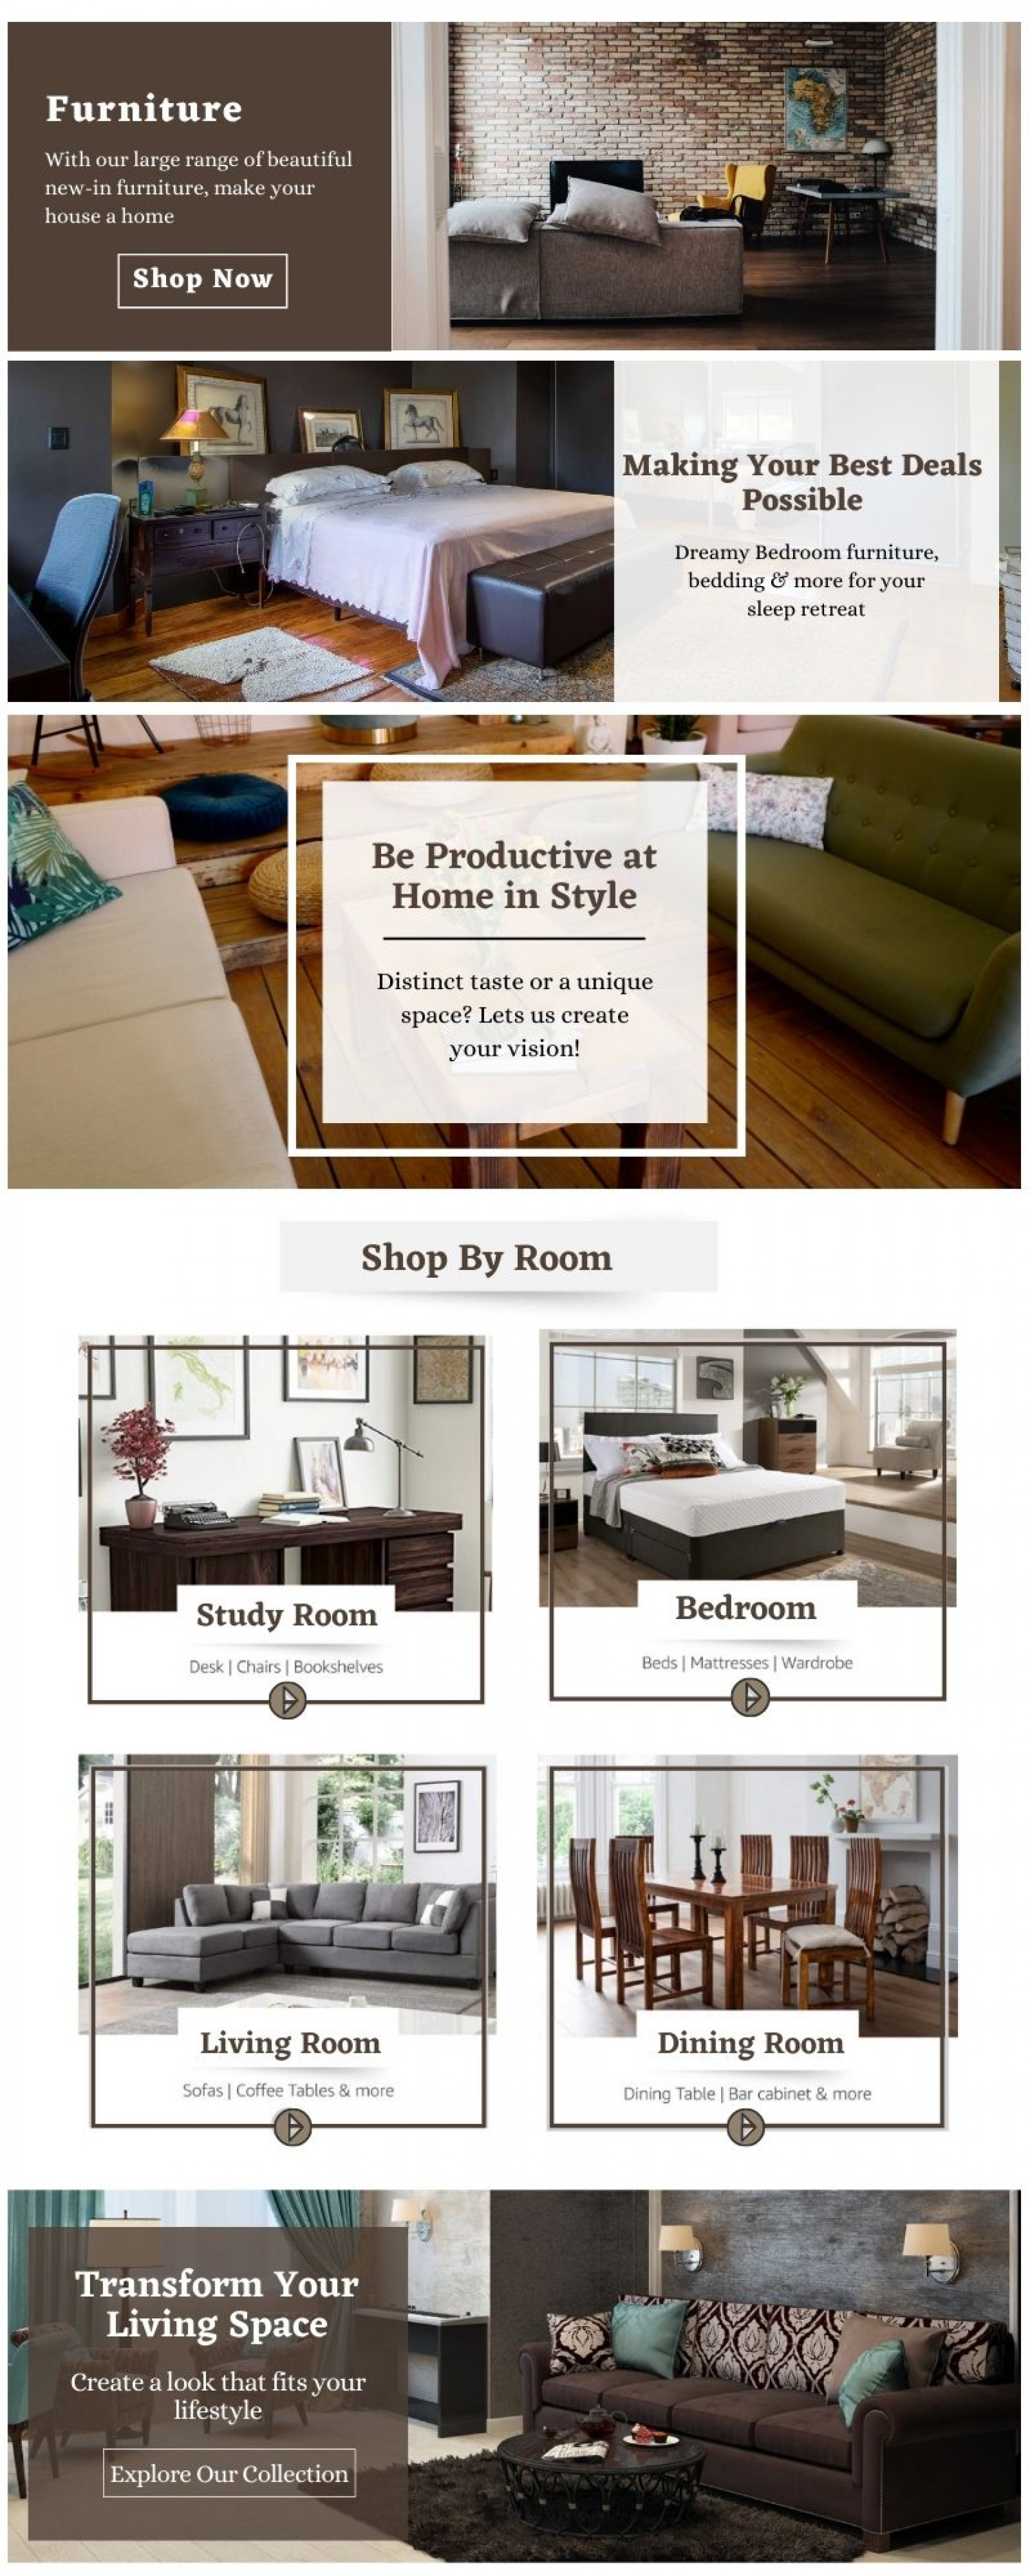 Outfit Your Home With Stylish Furniture Infographic